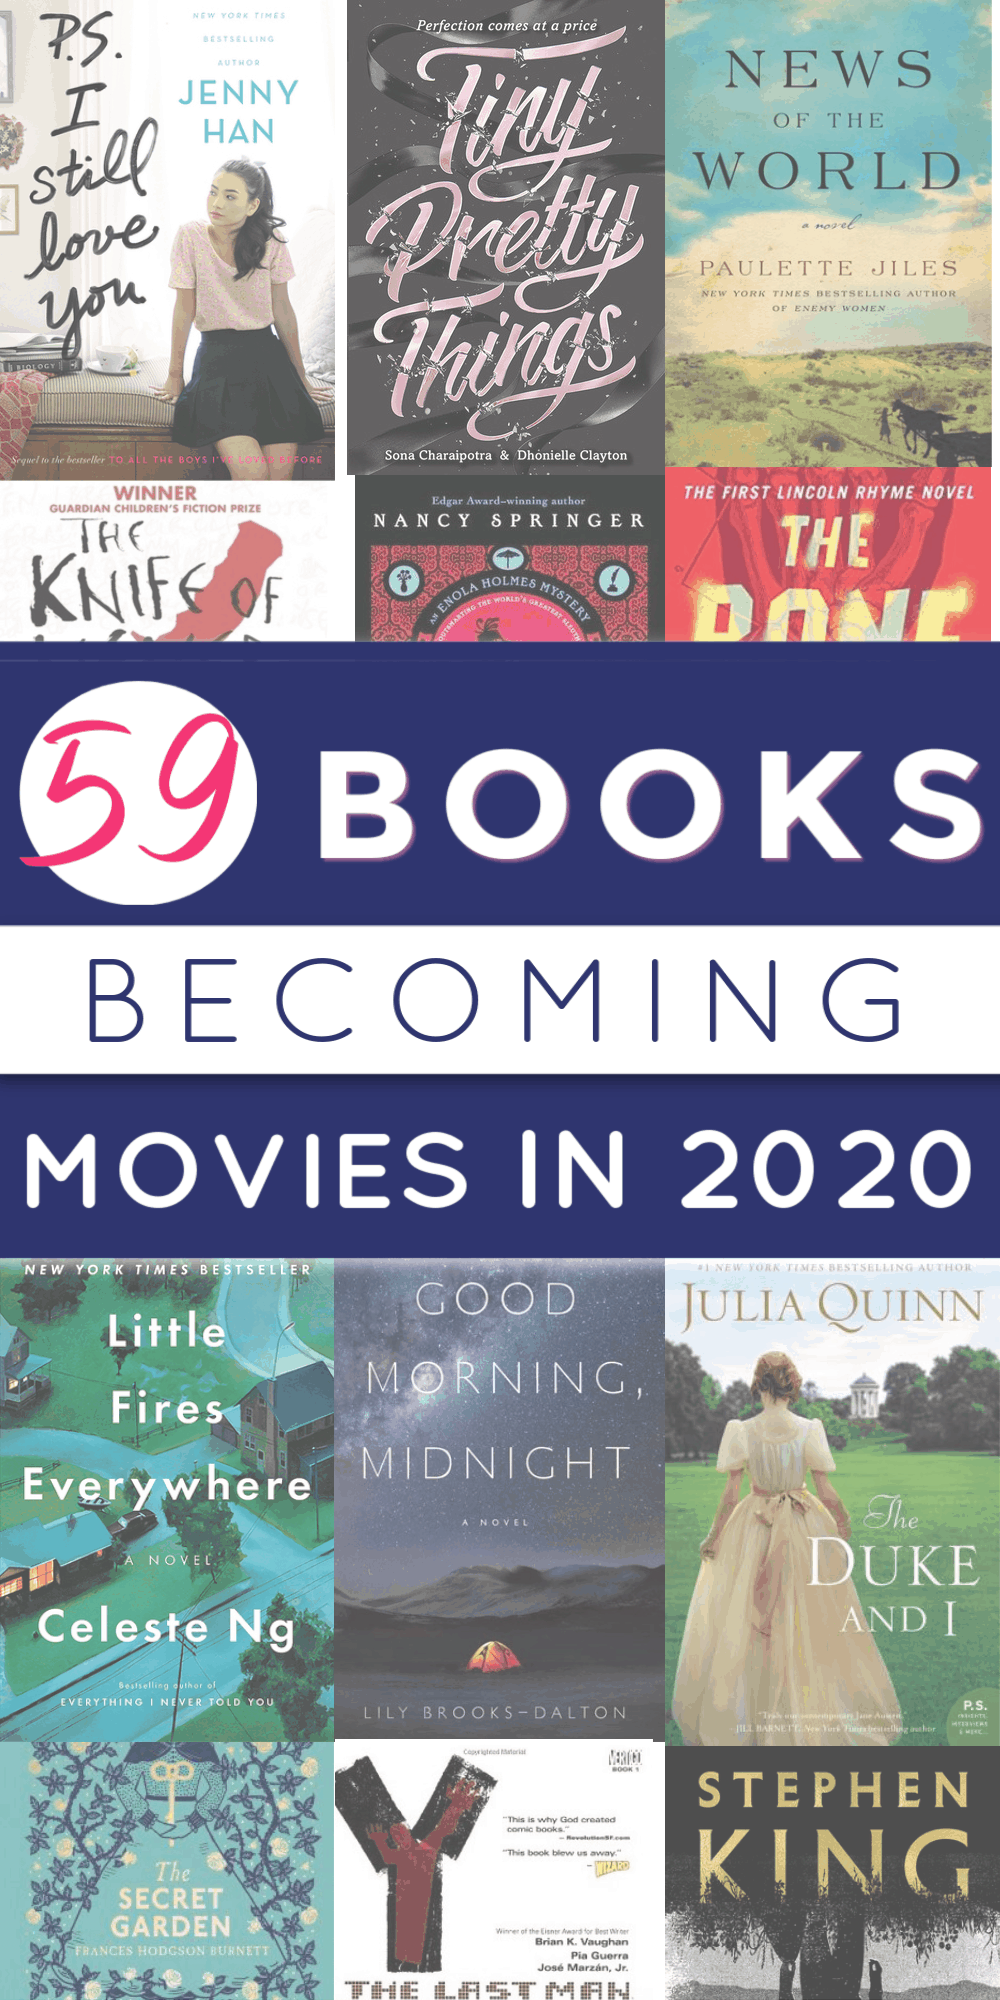 Best Novels 2020.The Definitive Guide To All The Books Becoming Movies In 2020